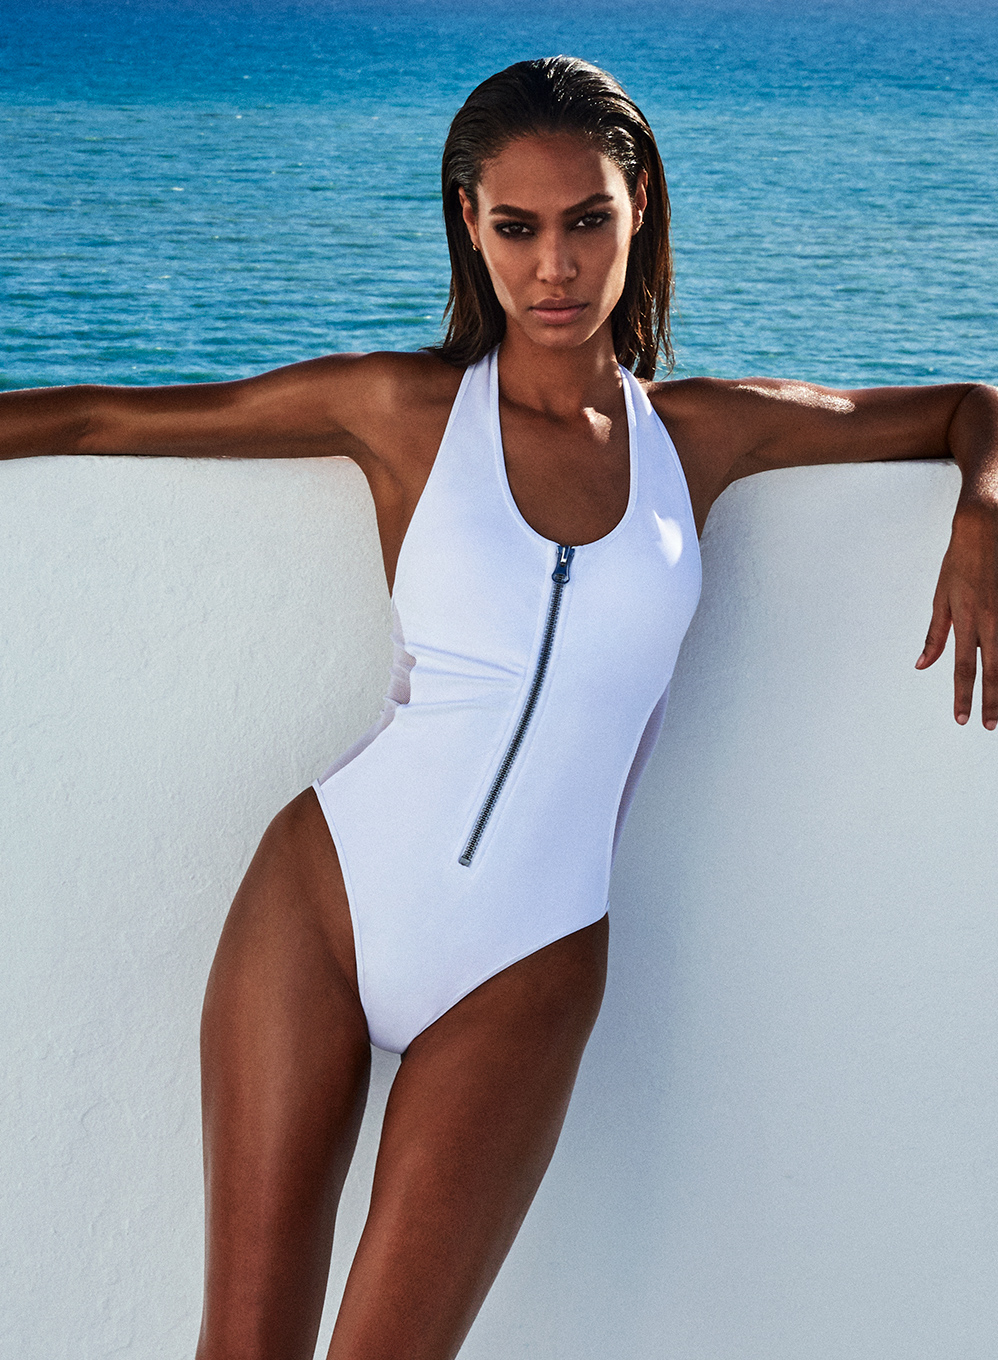 e41a3b9089 Joan Smalls Zip-up Front One Piece Swimsuit Size M In White By Smart And  Sexy